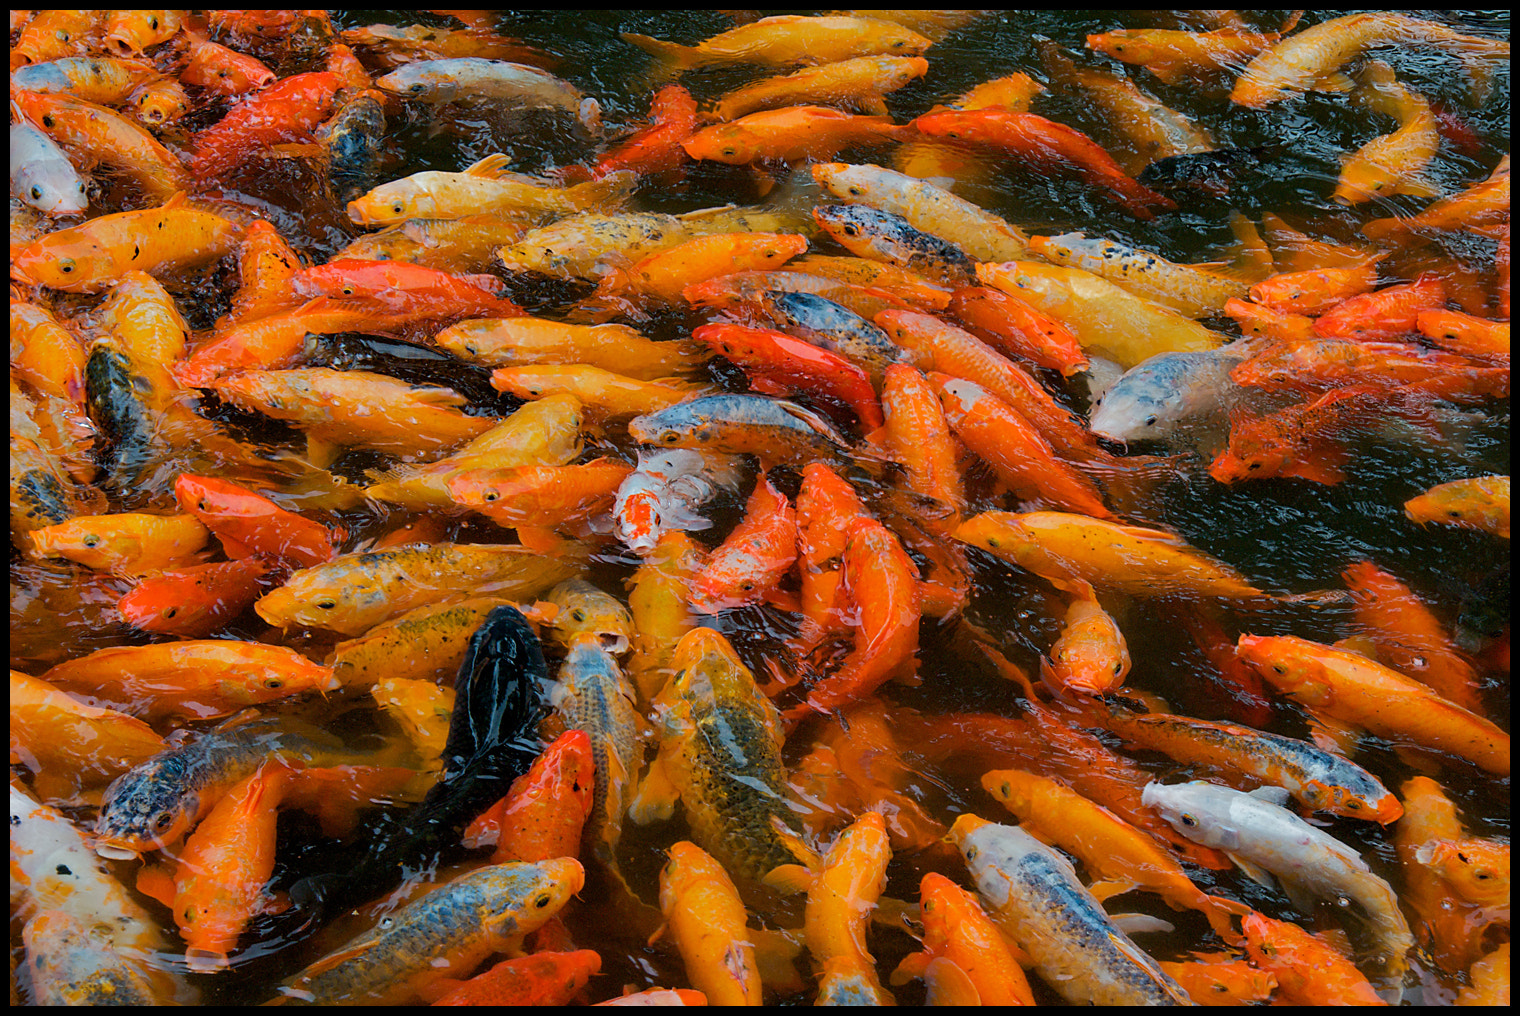 Photograph Hungry Hungry Koi Fish by vovamir on 500px